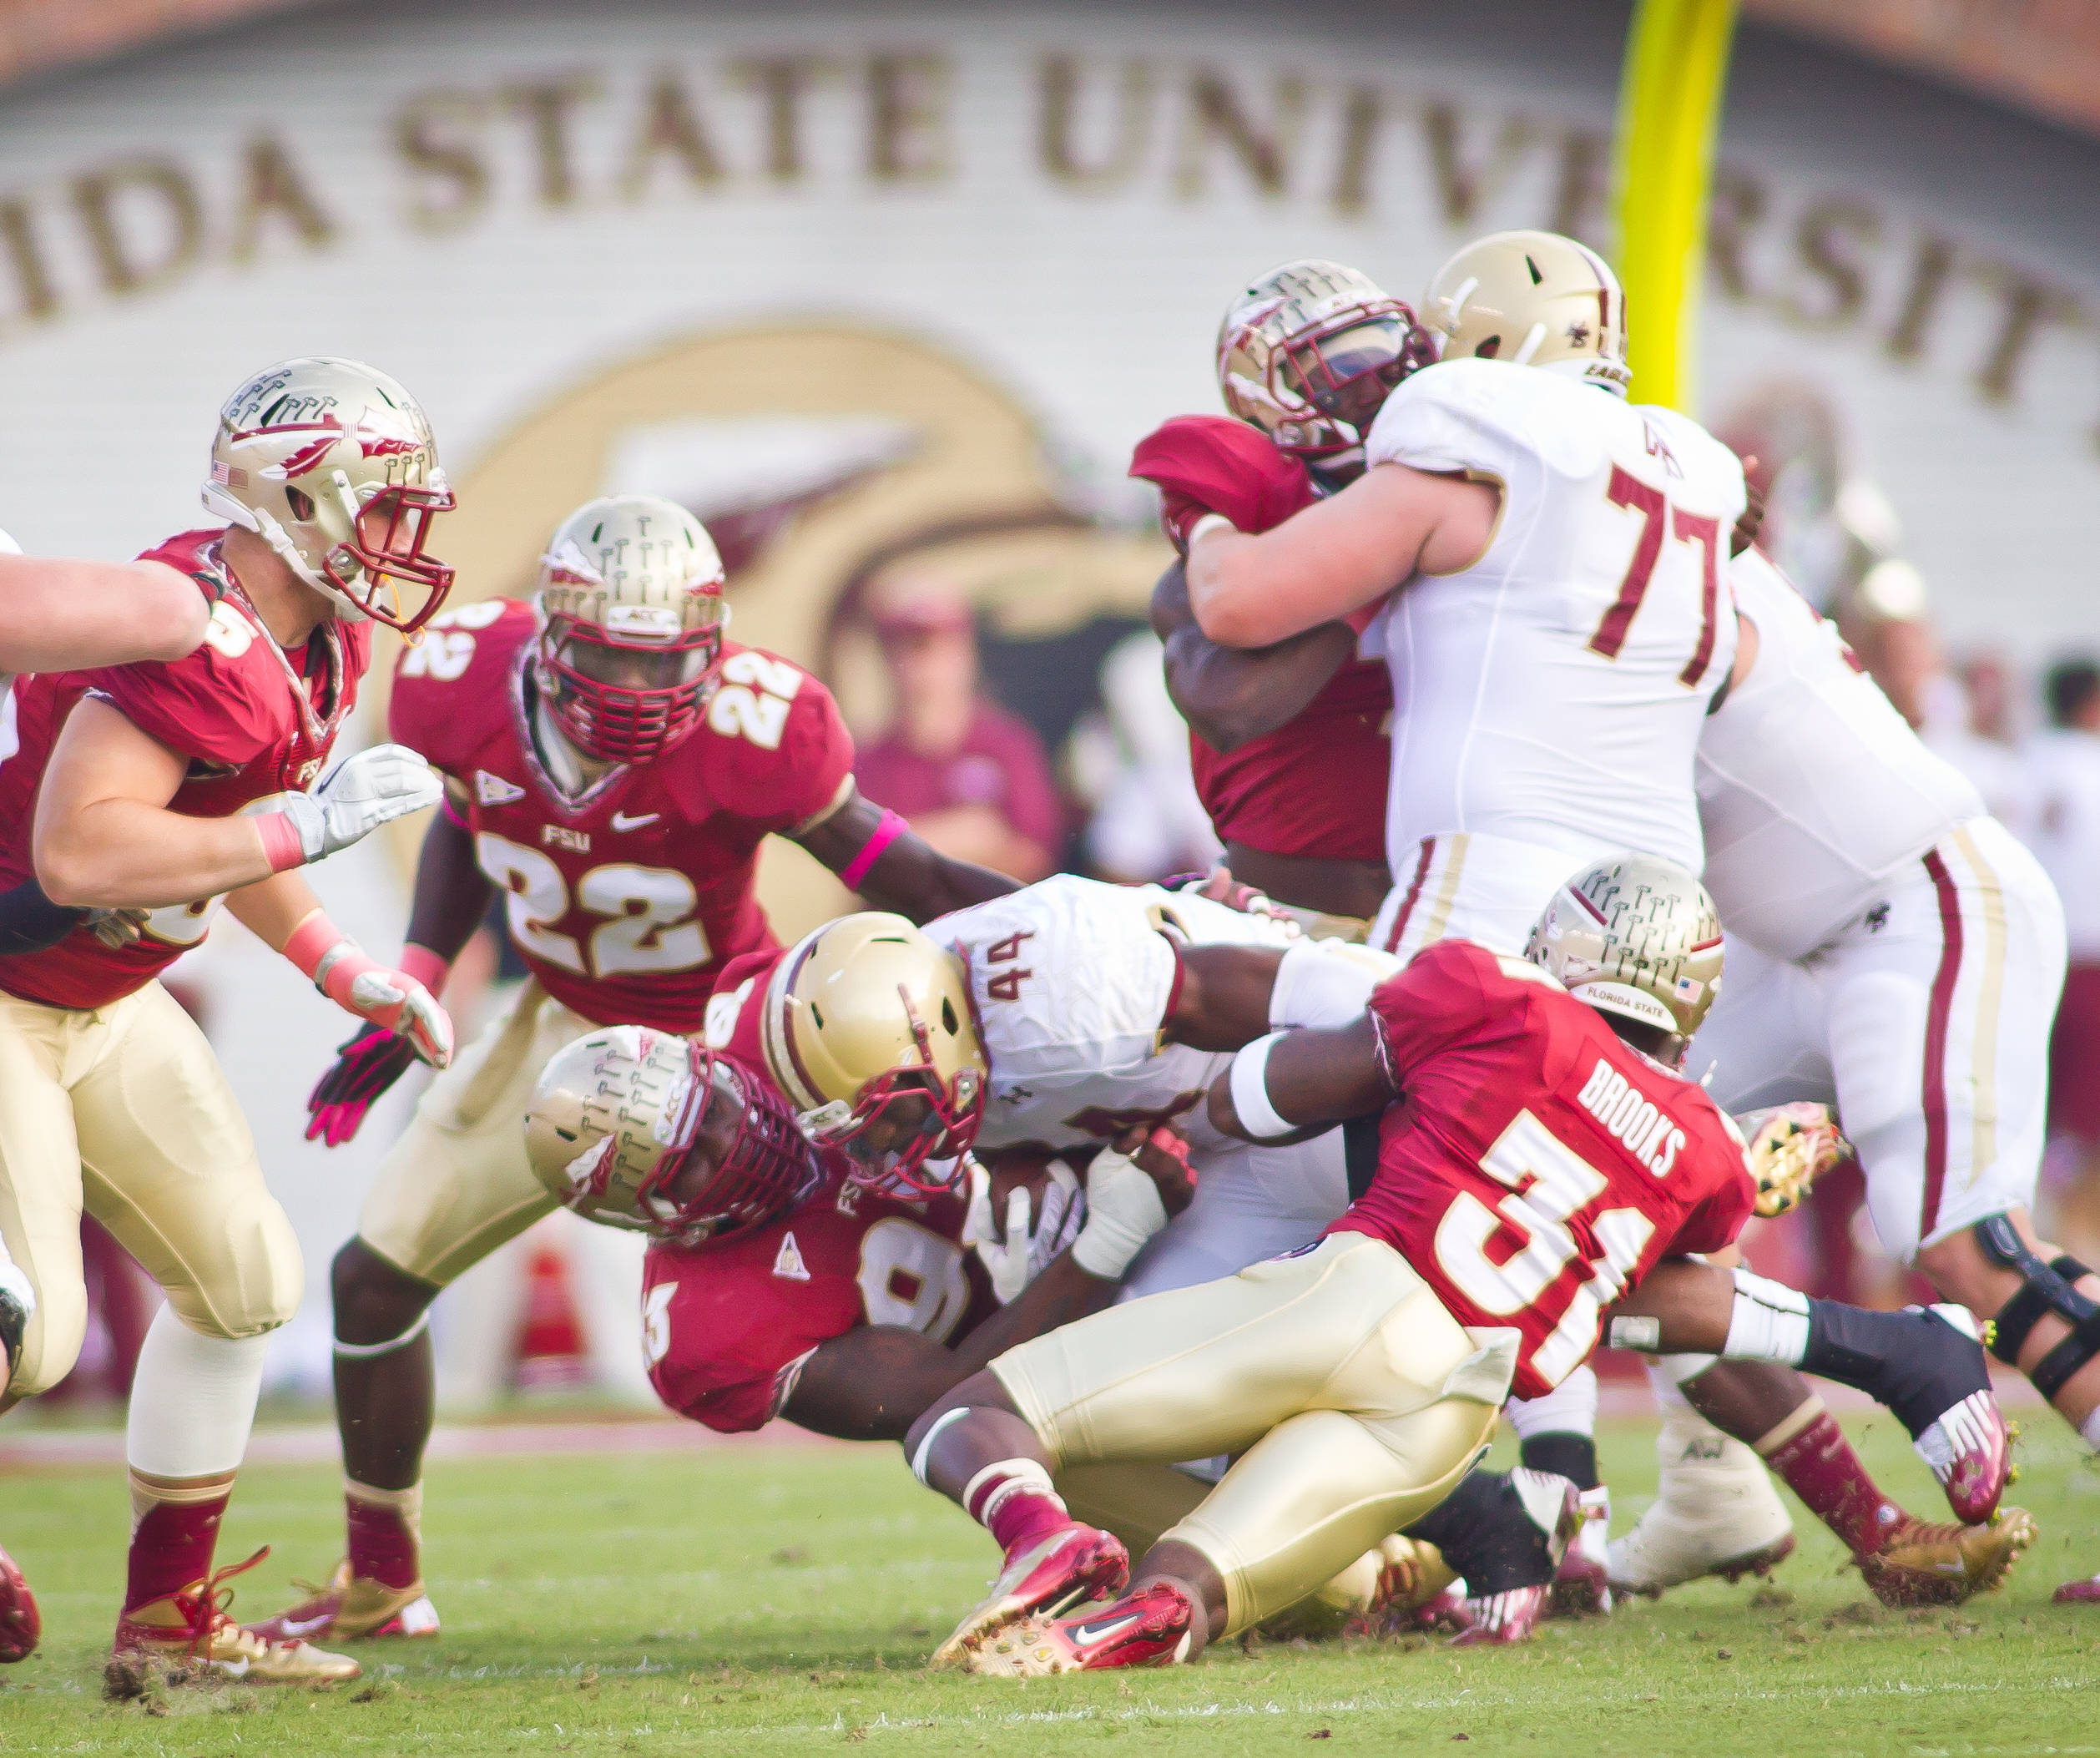 Everett Dawkins (93) and Terrence Brooks (31) bring down a BC runner.